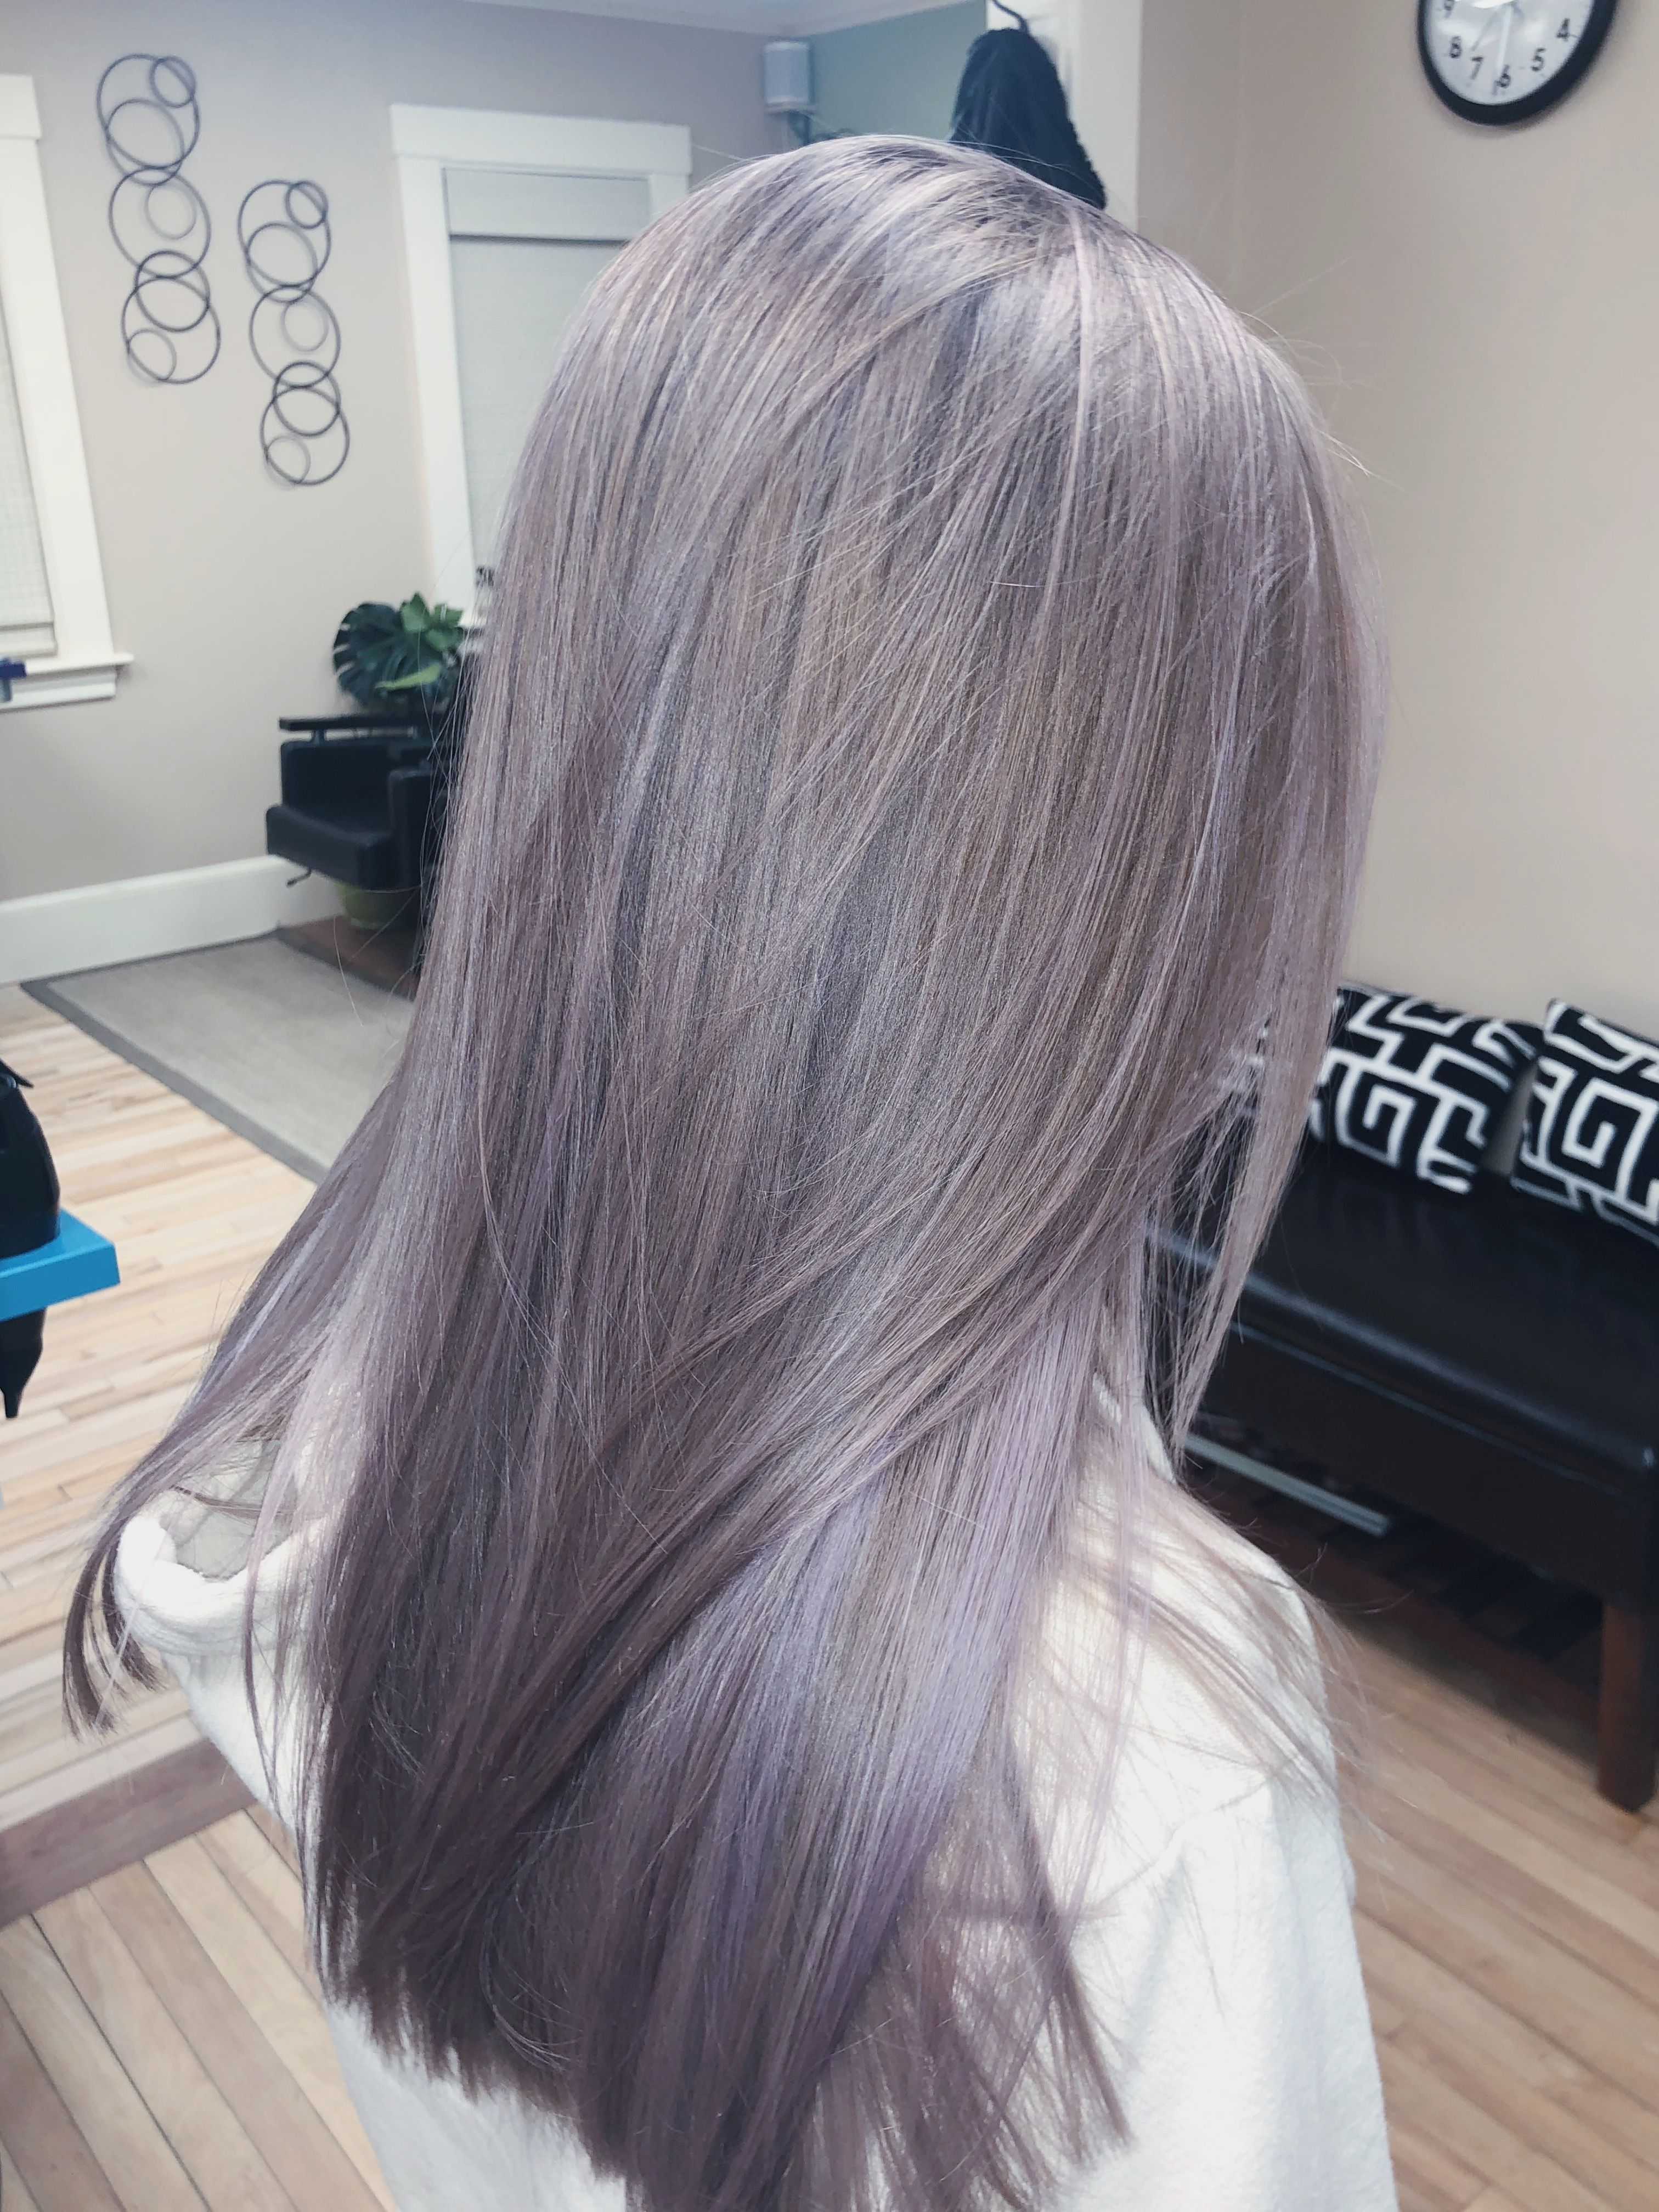 2020 New Gray Hair Wigs For African American Women Wig Stylist Near Me Pink Grey Hair Cover Grey Hair At Home Garth Wig Ginger Spice Wig